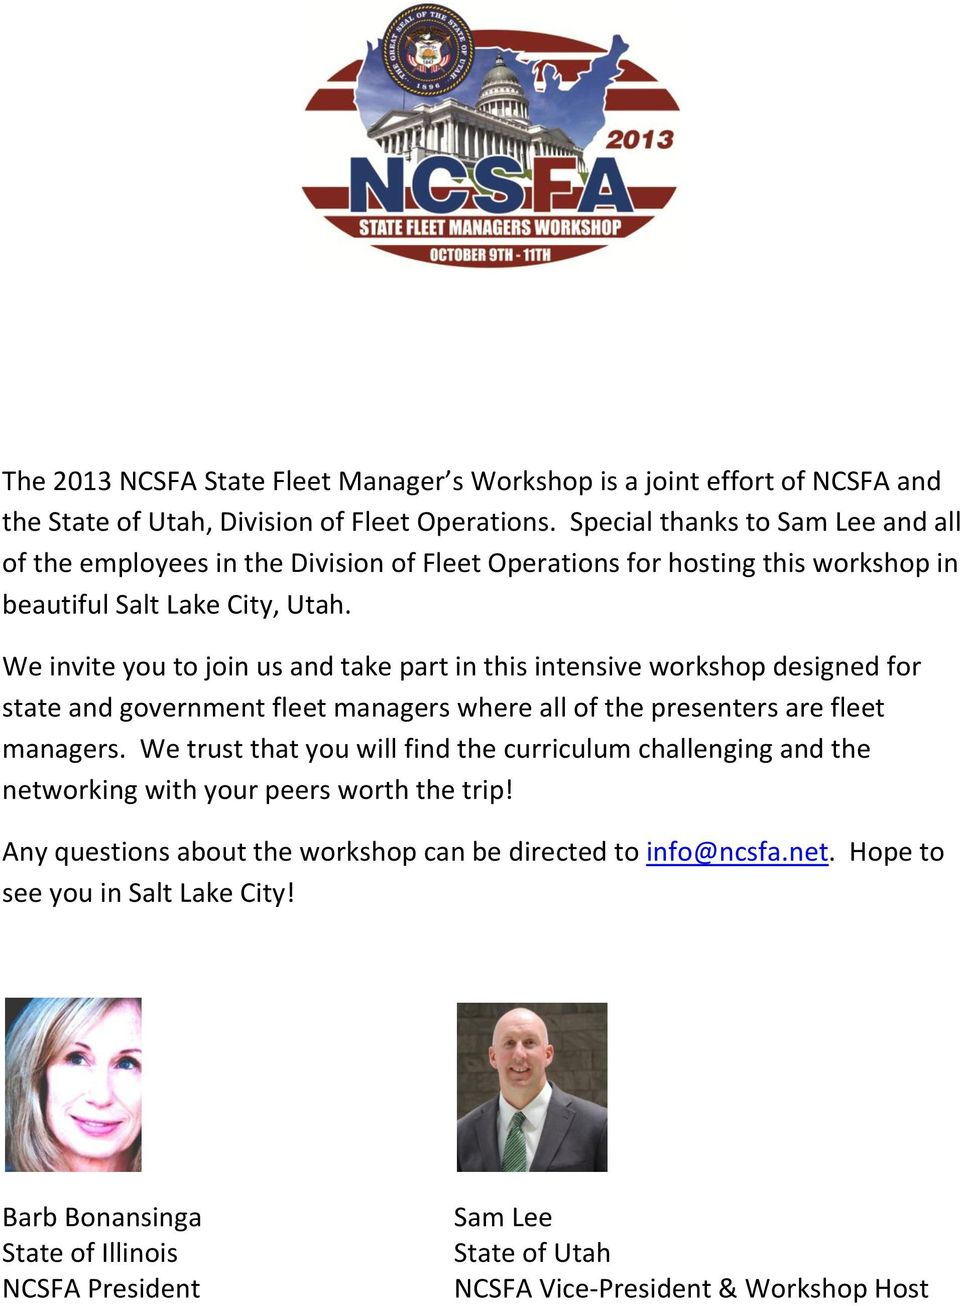 We invite you to join us and take part in this intensive workshop designed for state and government fleet managers where all of the presenters are fleet managers.